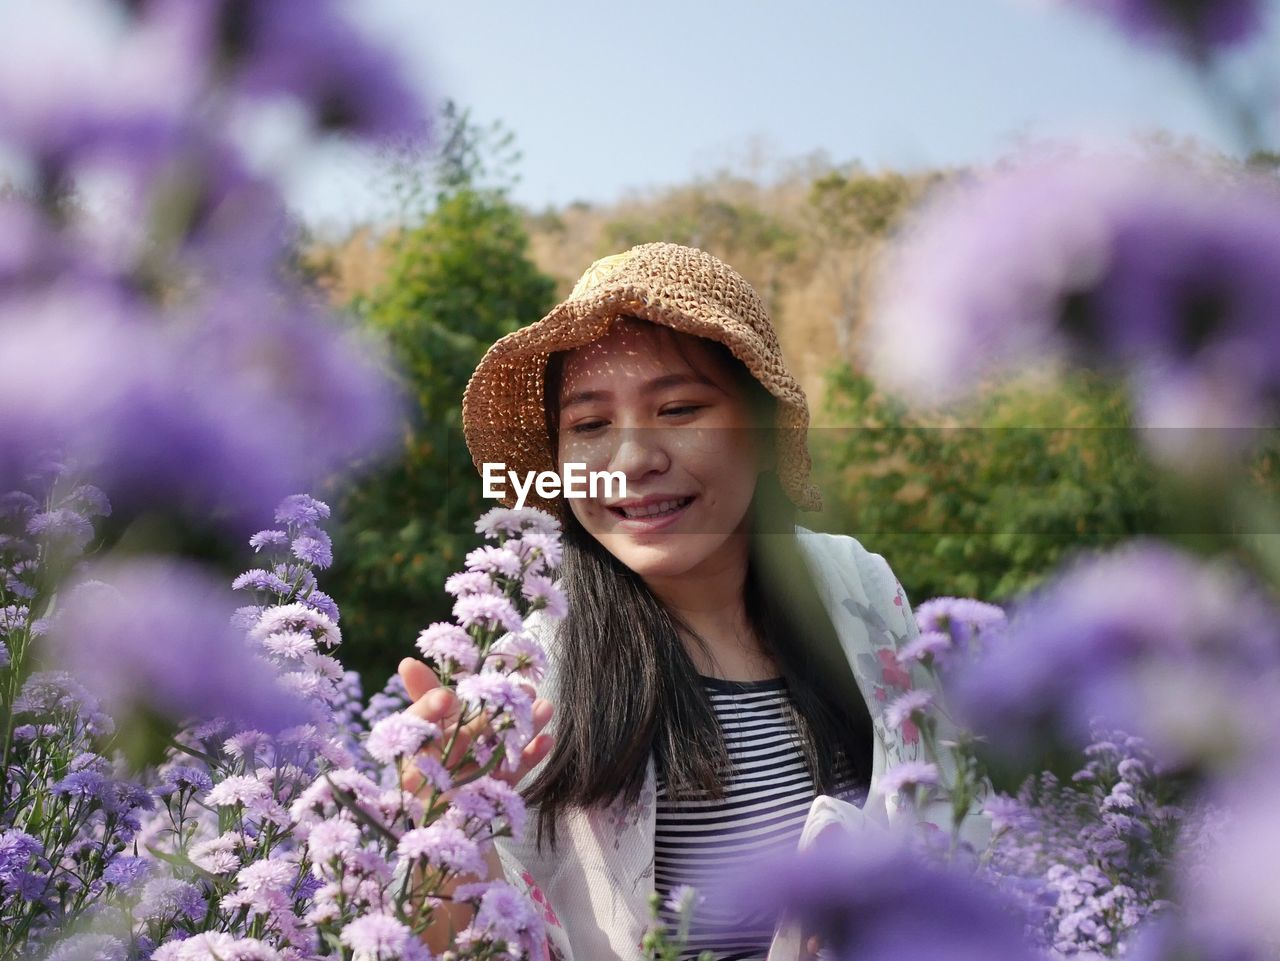 PORTRAIT OF SMILING YOUNG WOMAN WITH PURPLE FLOWER